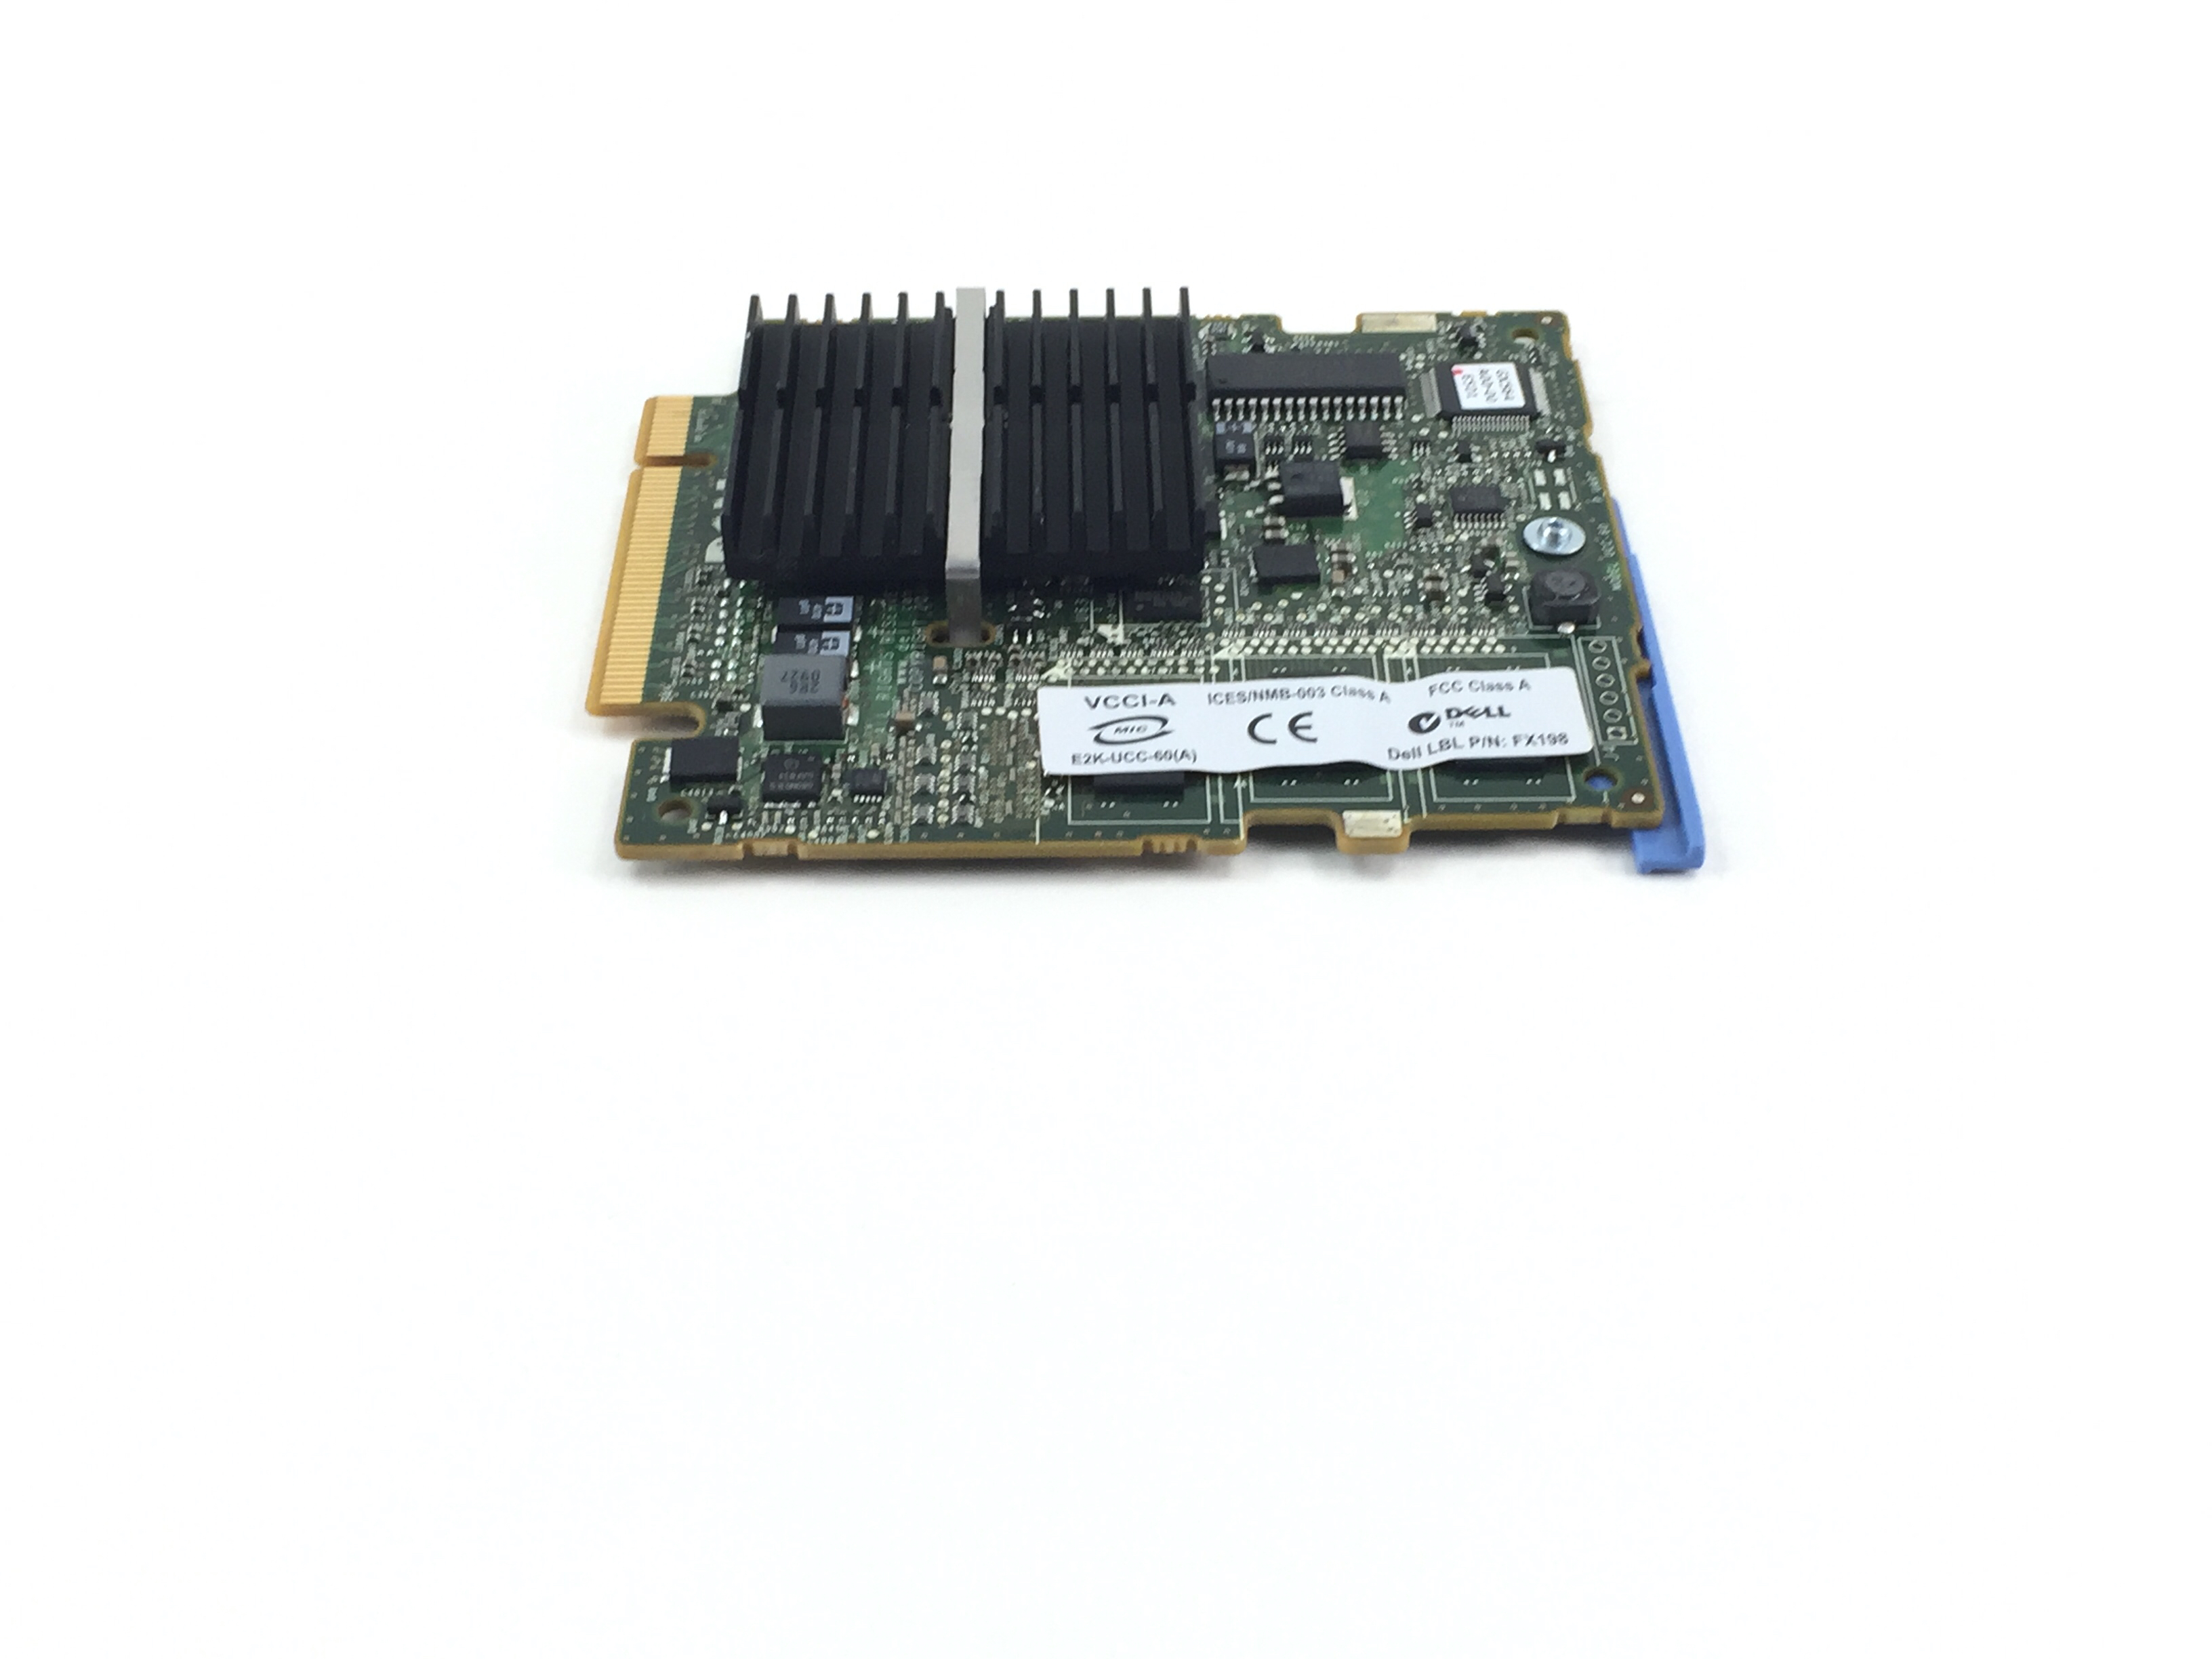 Dell PowerEdge M600 M610 PERC 6I SAS Raid Controller (HN793)